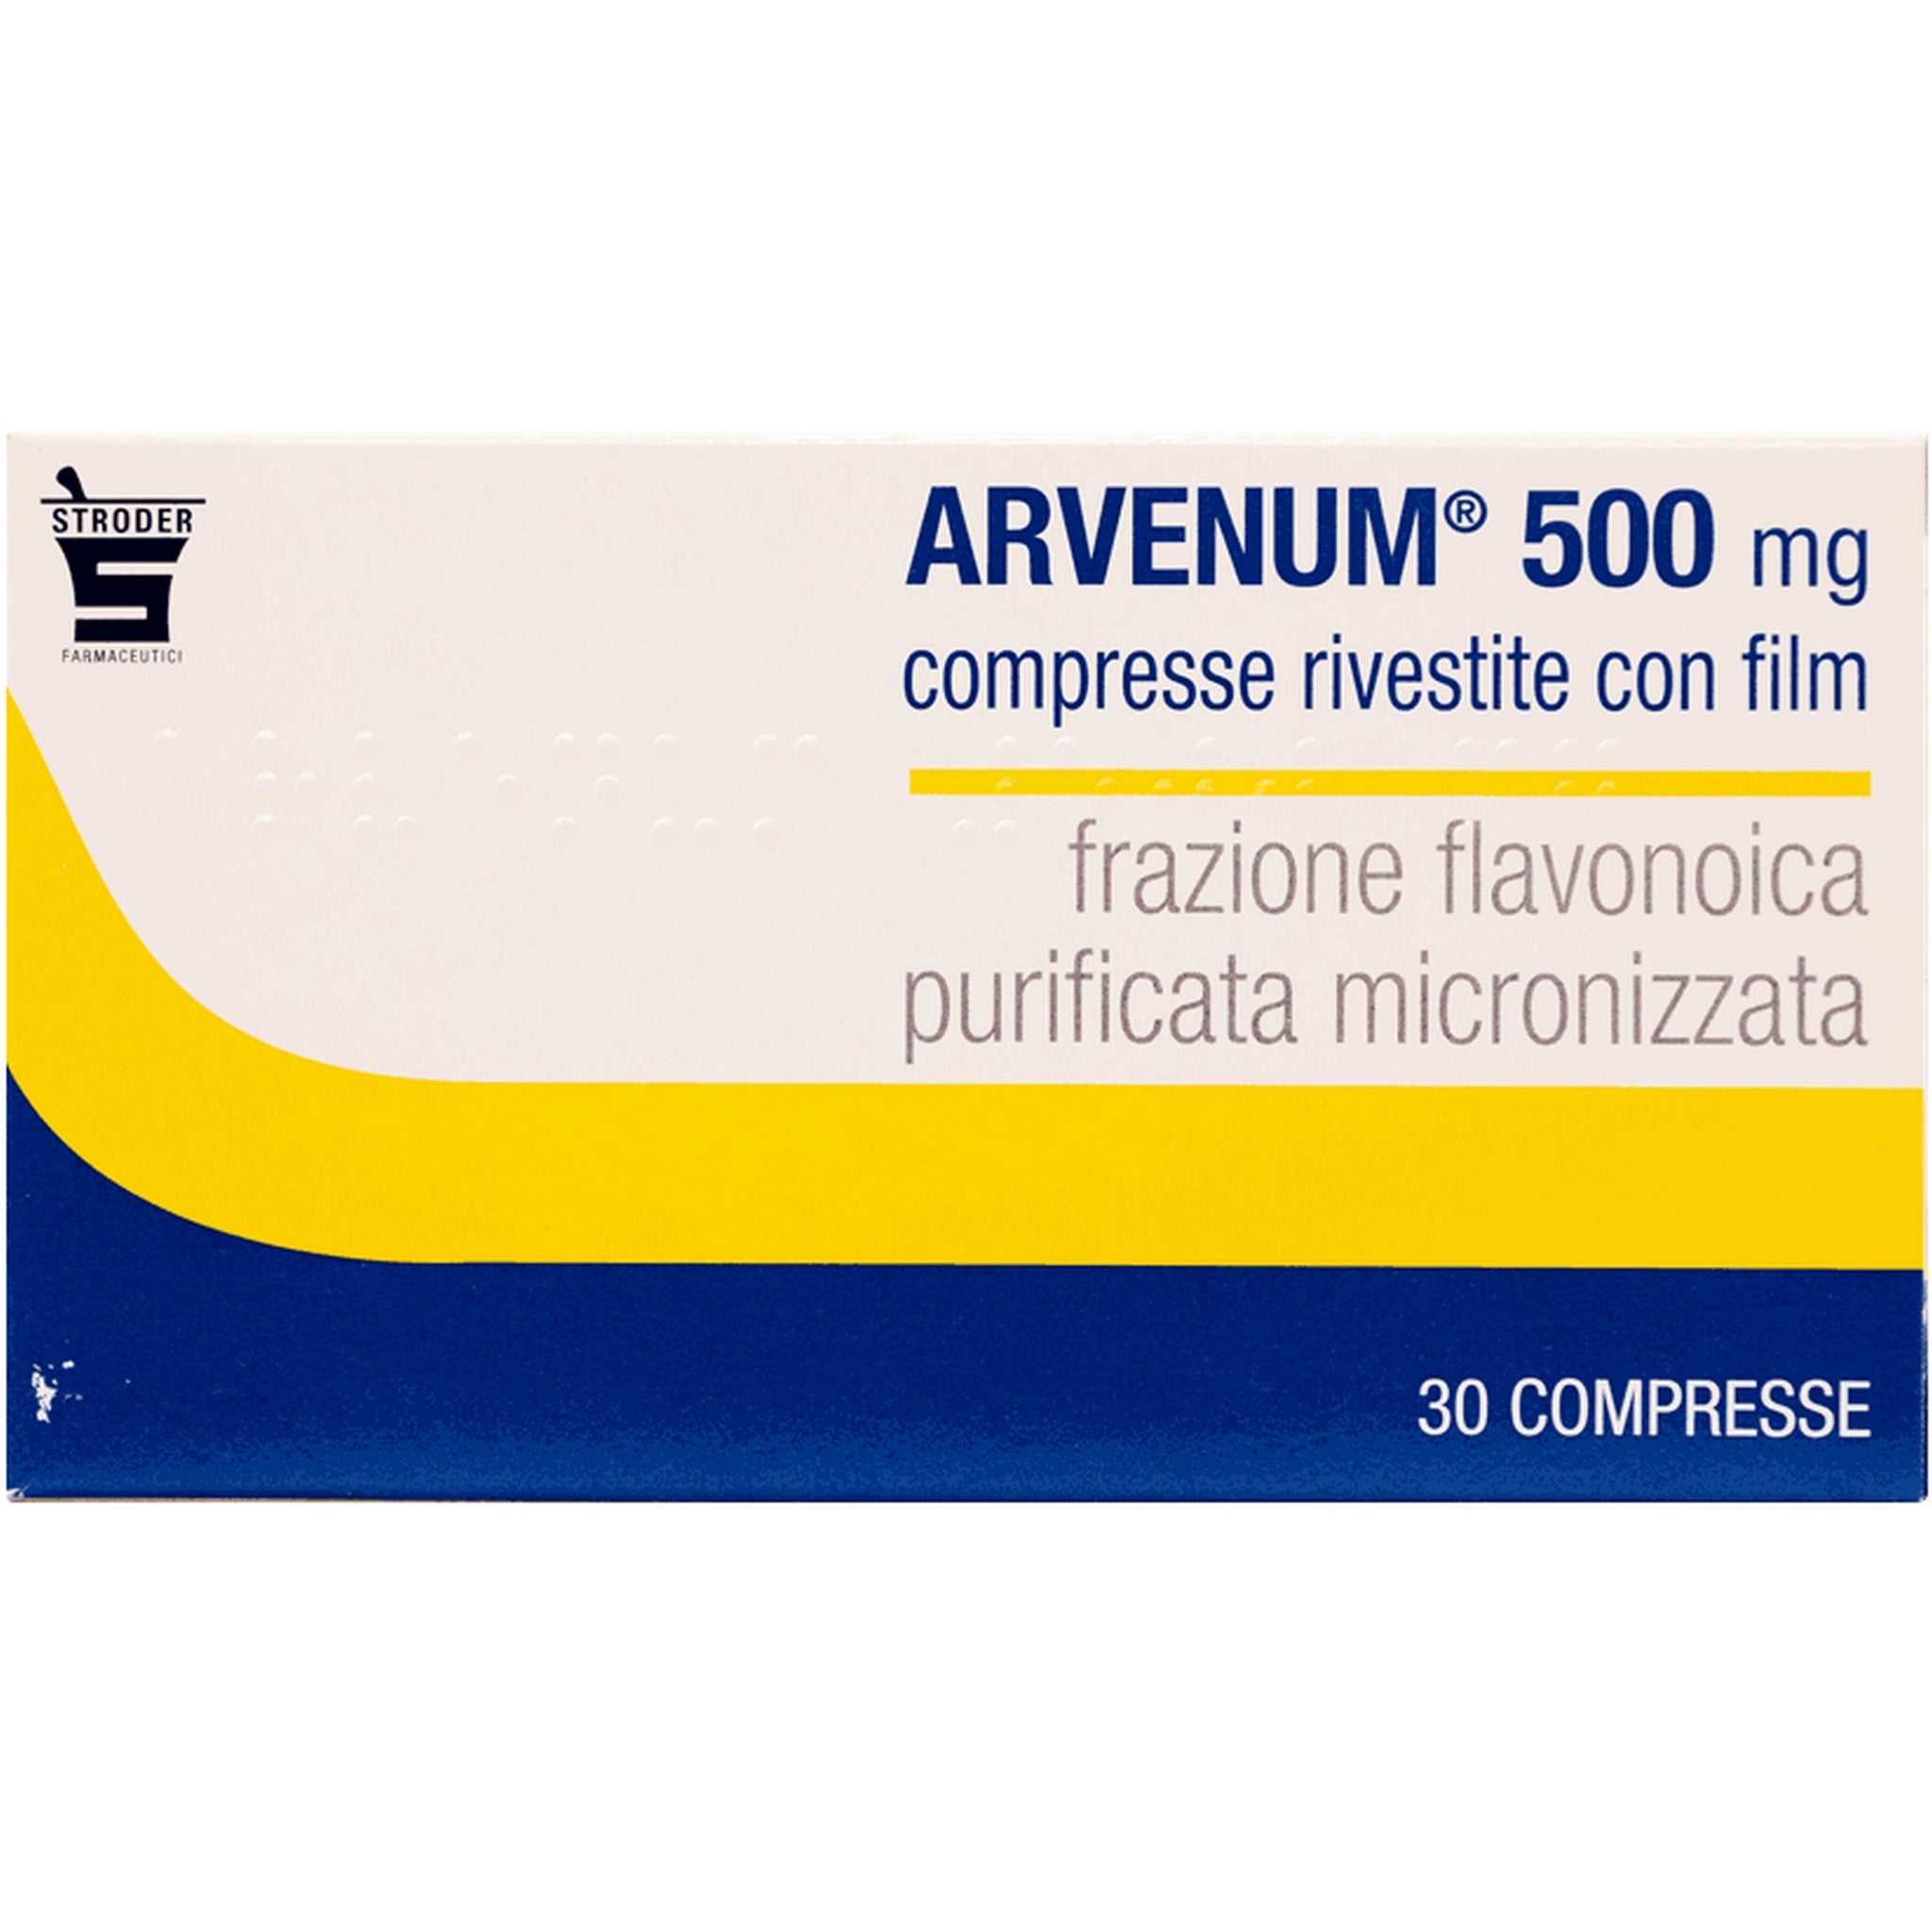 ARVENUM 500 30 COMPRESSE RIV 500MG